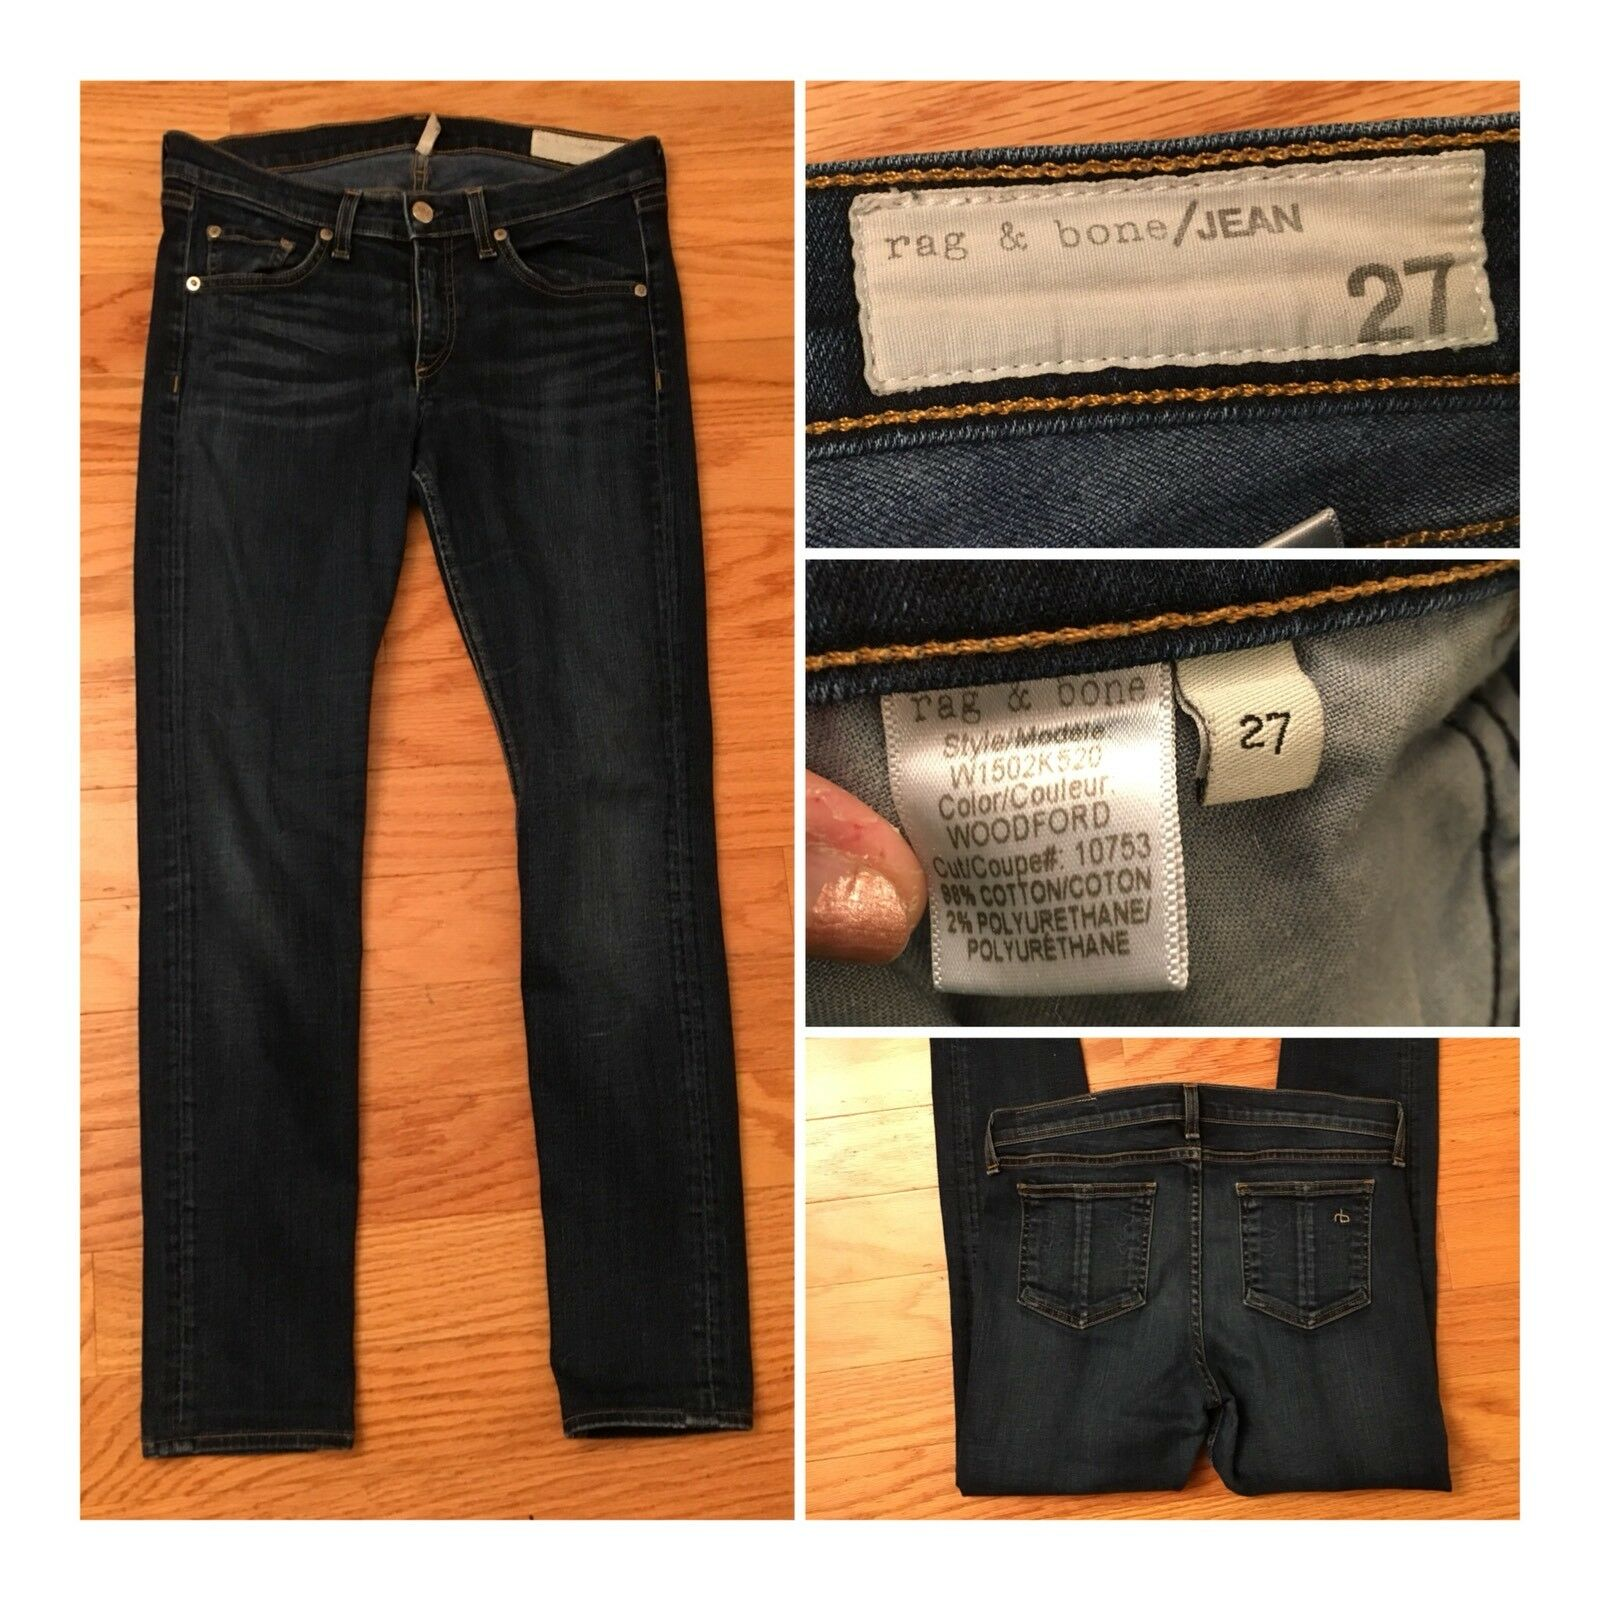 Rag & Bone Femme Jean Skinny Medium Wash Taille 27 x 28 Made in the USA